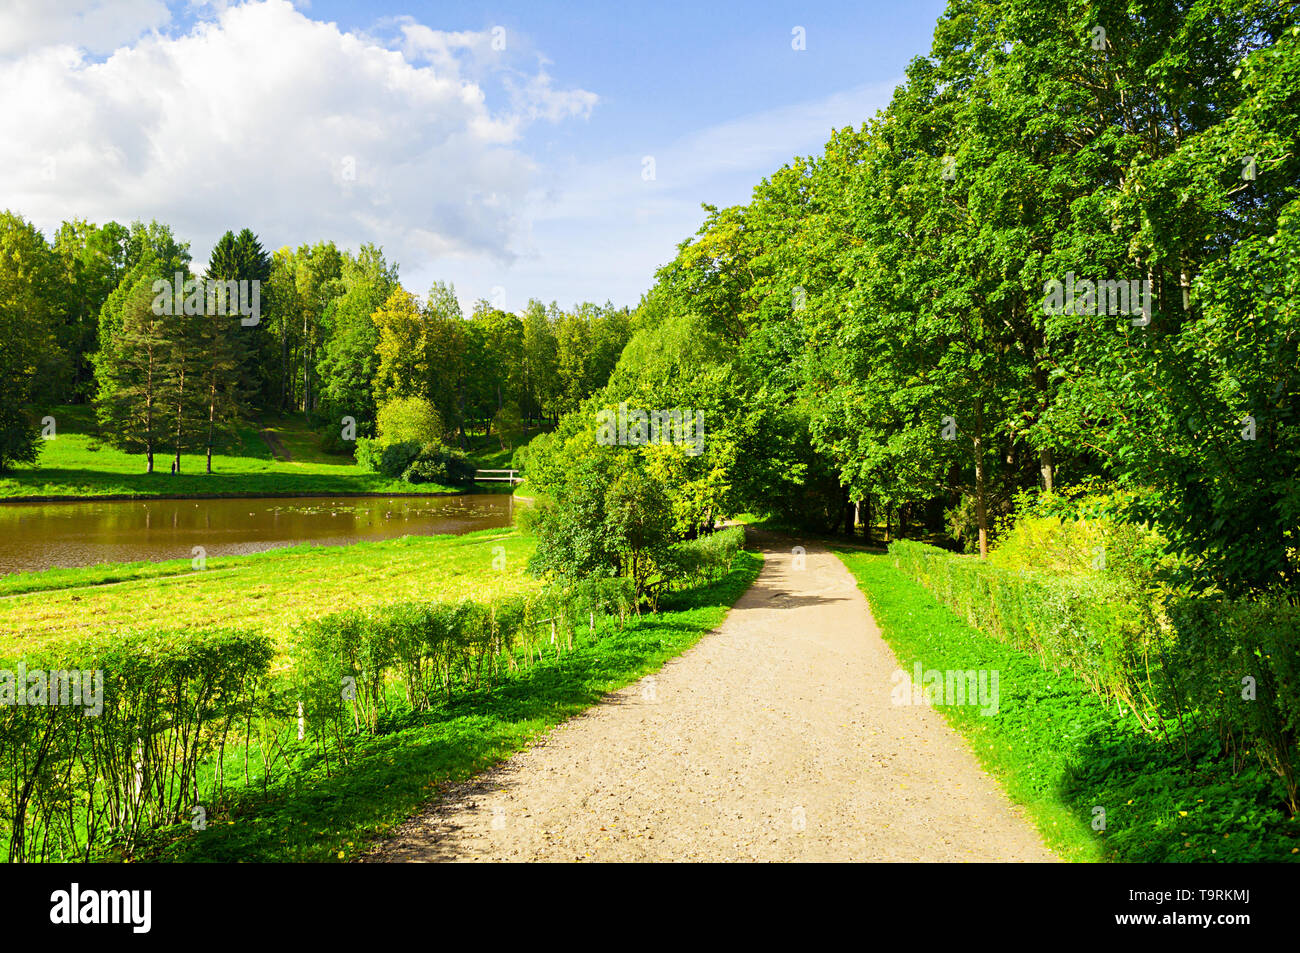 Summer landscape - forest trees growing at the bank of the river and narrow path. Summer park nature in sunny day - Stock Image